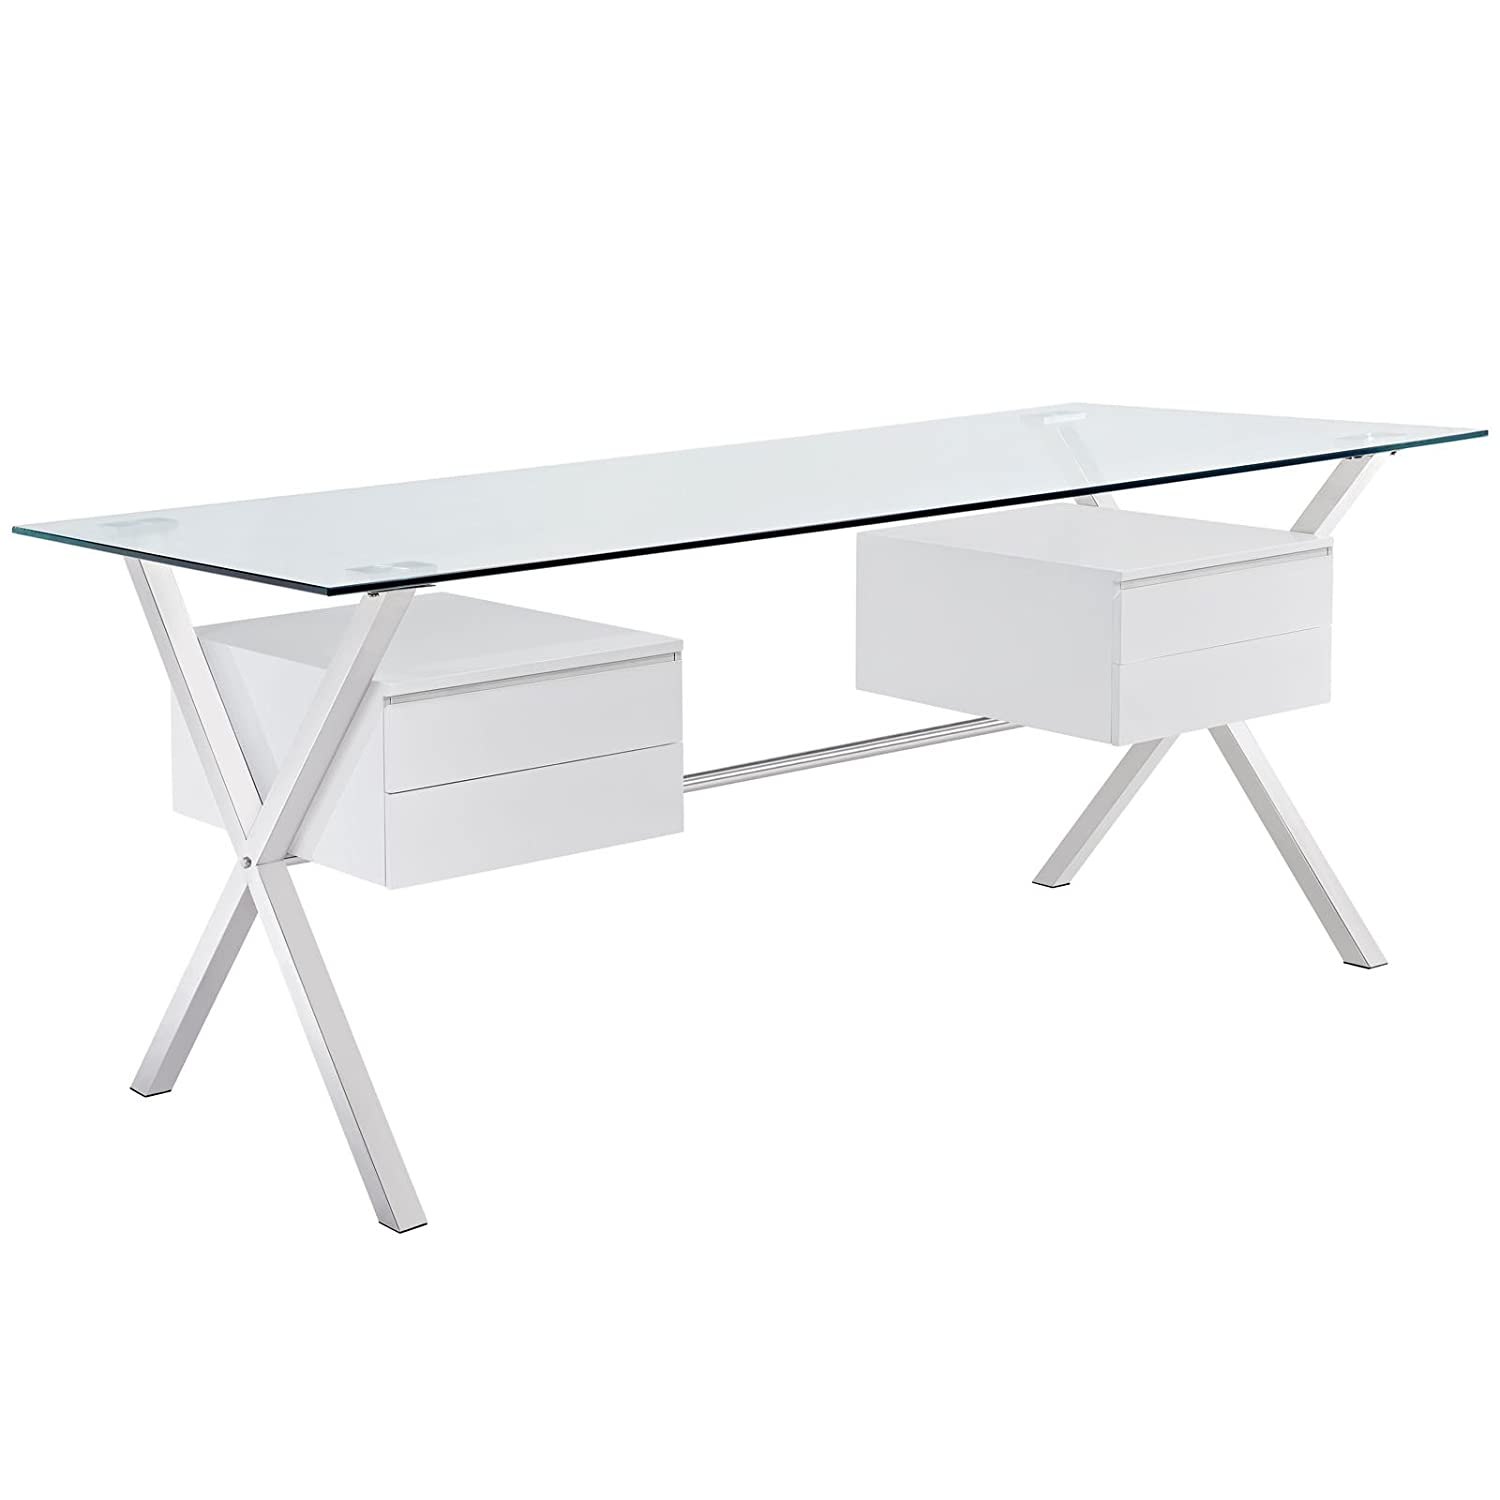 glass top office desk. Amazon.com: Modway Abeyance Contemporary Modern Glass-Top Office Desk In White: Kitchen \u0026 Dining Glass Top